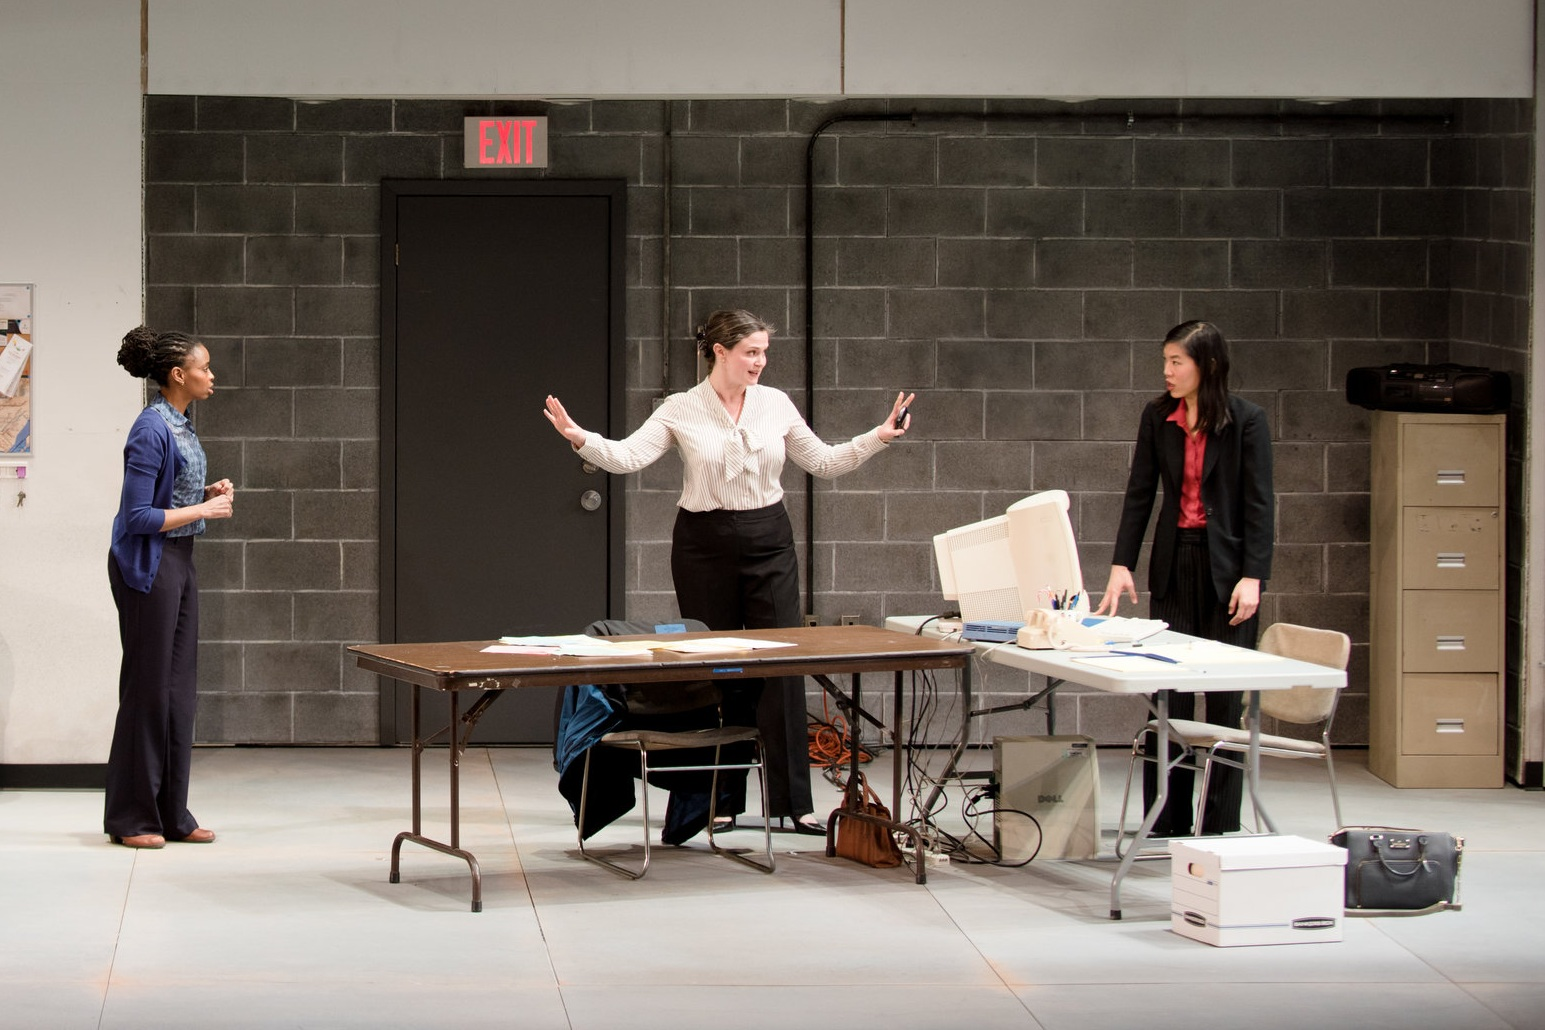 Ted Koch, Carla Duren, Jessica Wortham, and Nancy Sun in MARGINAL LOSS by Deborah Stein, 2018 Humana Festival. Photo by Dana Rogers..JPG